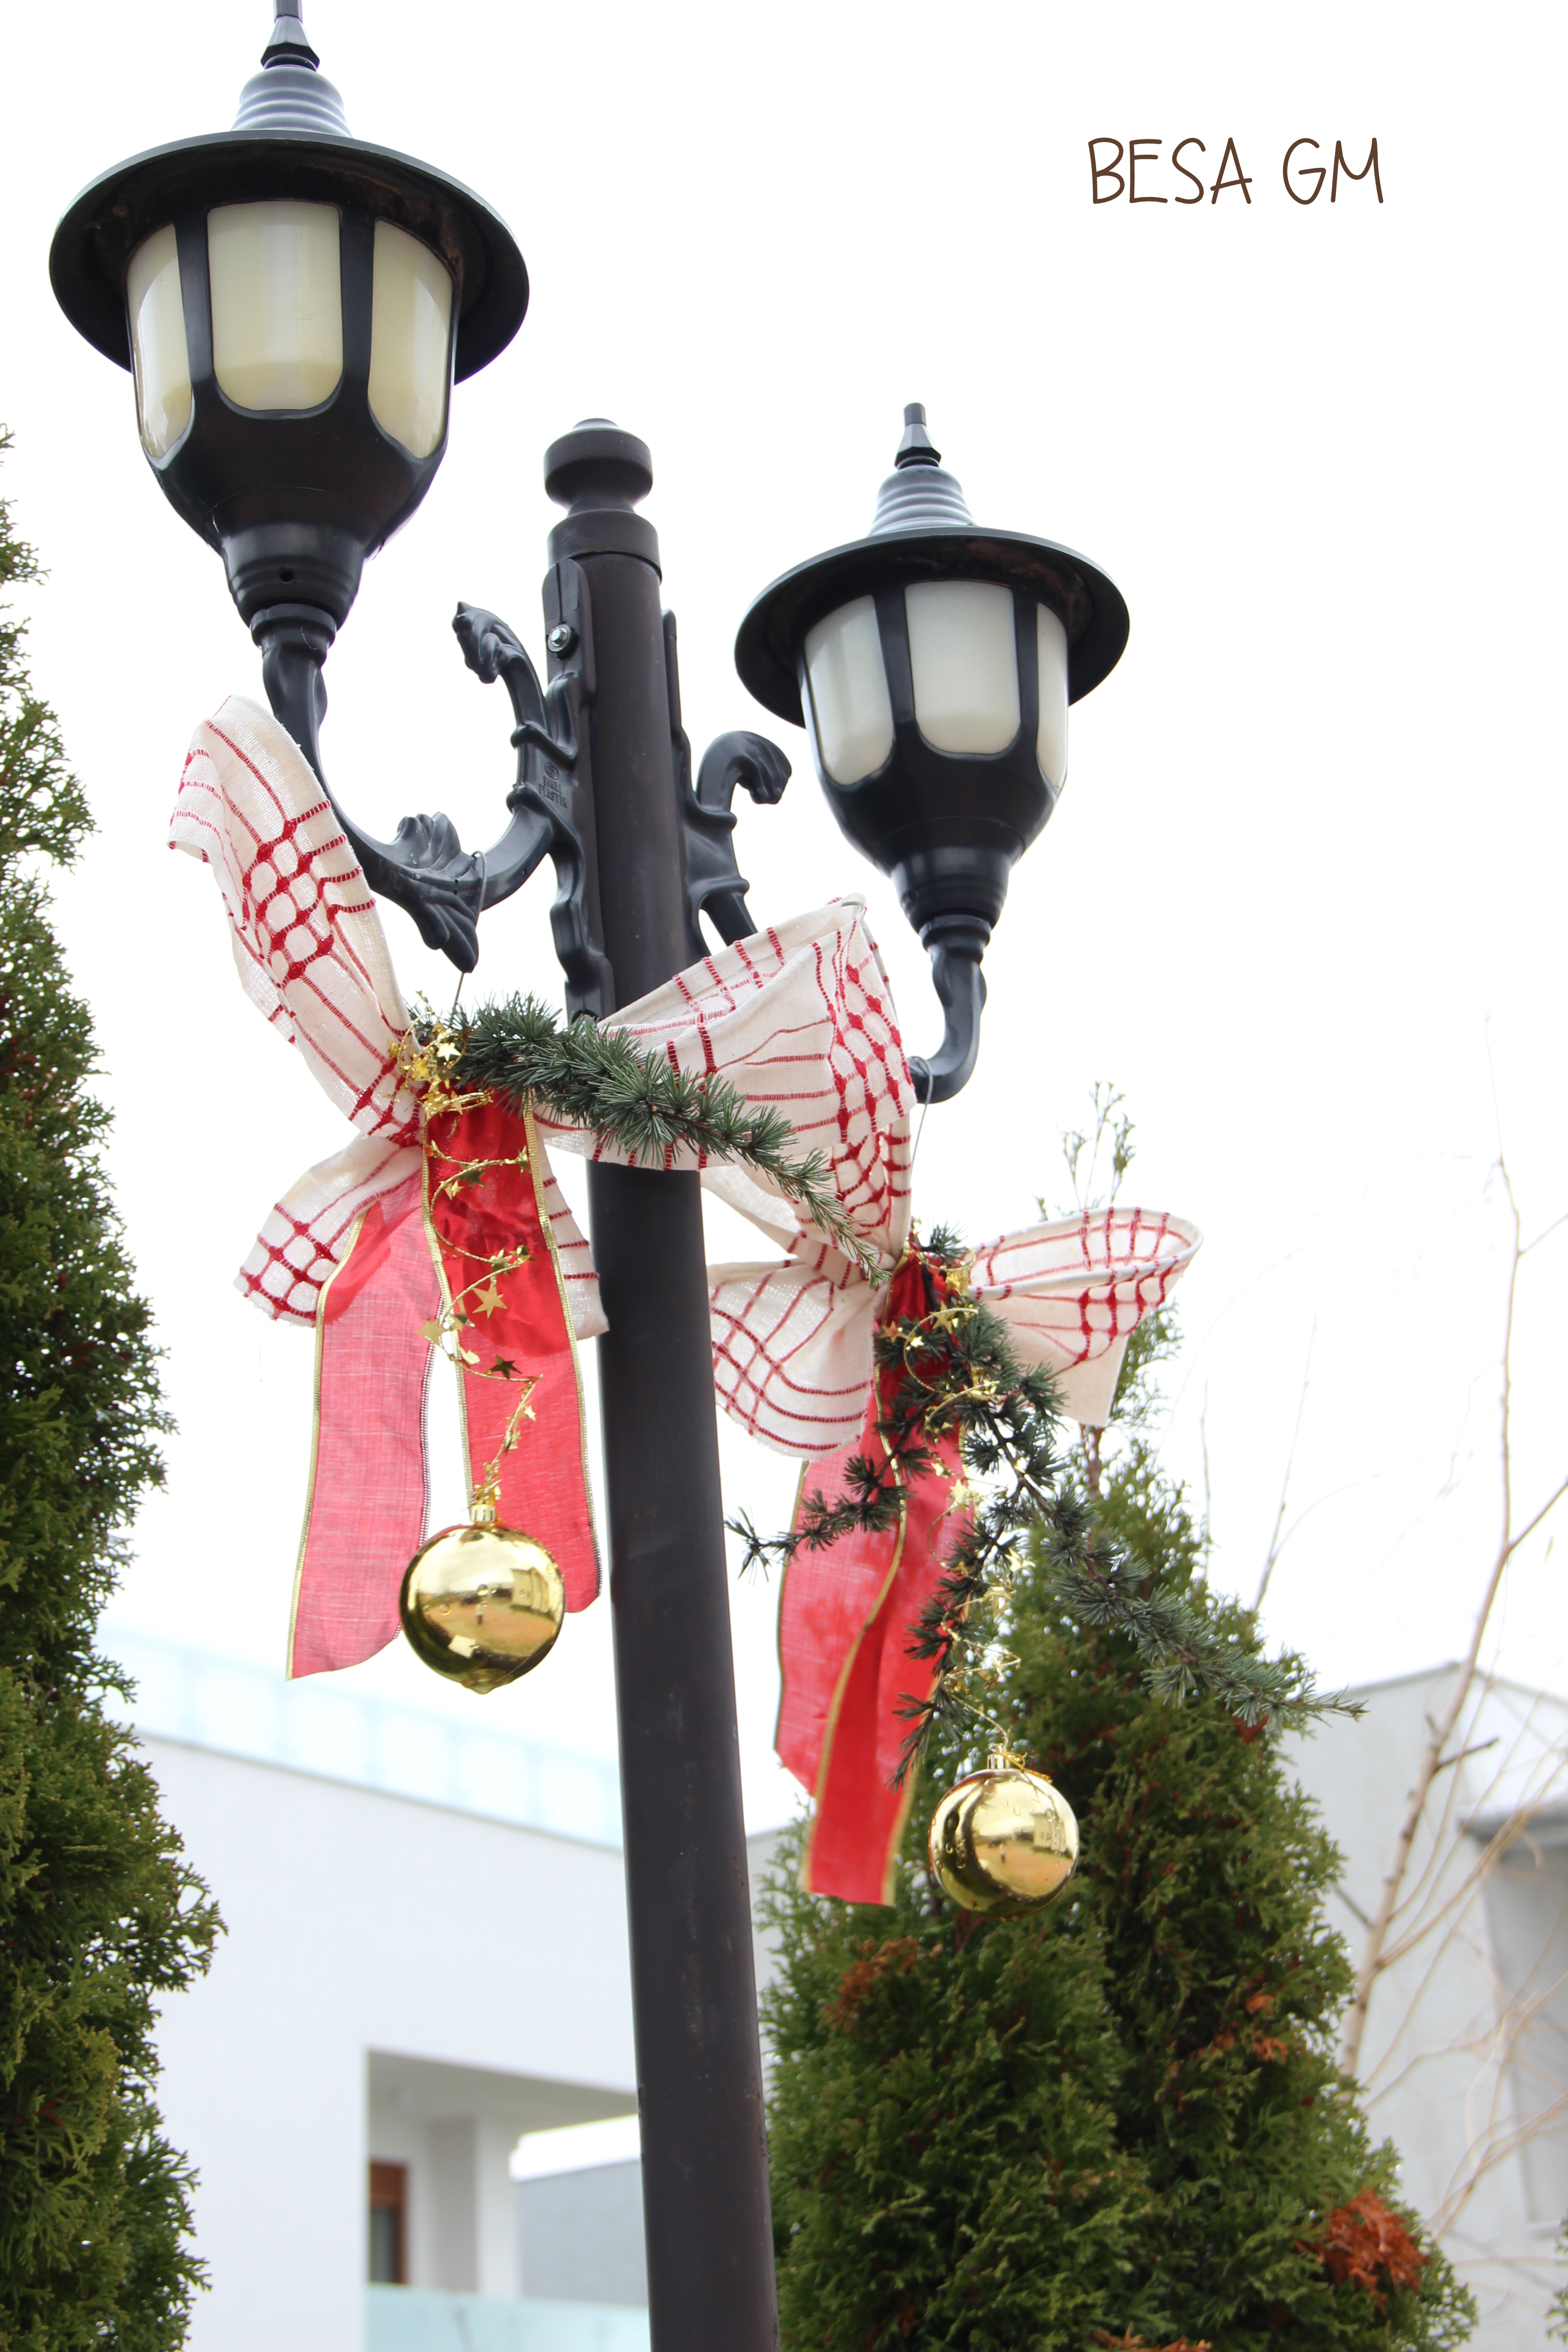 Outdoor Christmas Lamp Posts.Outdoor Holiday Decoration Besa Gm